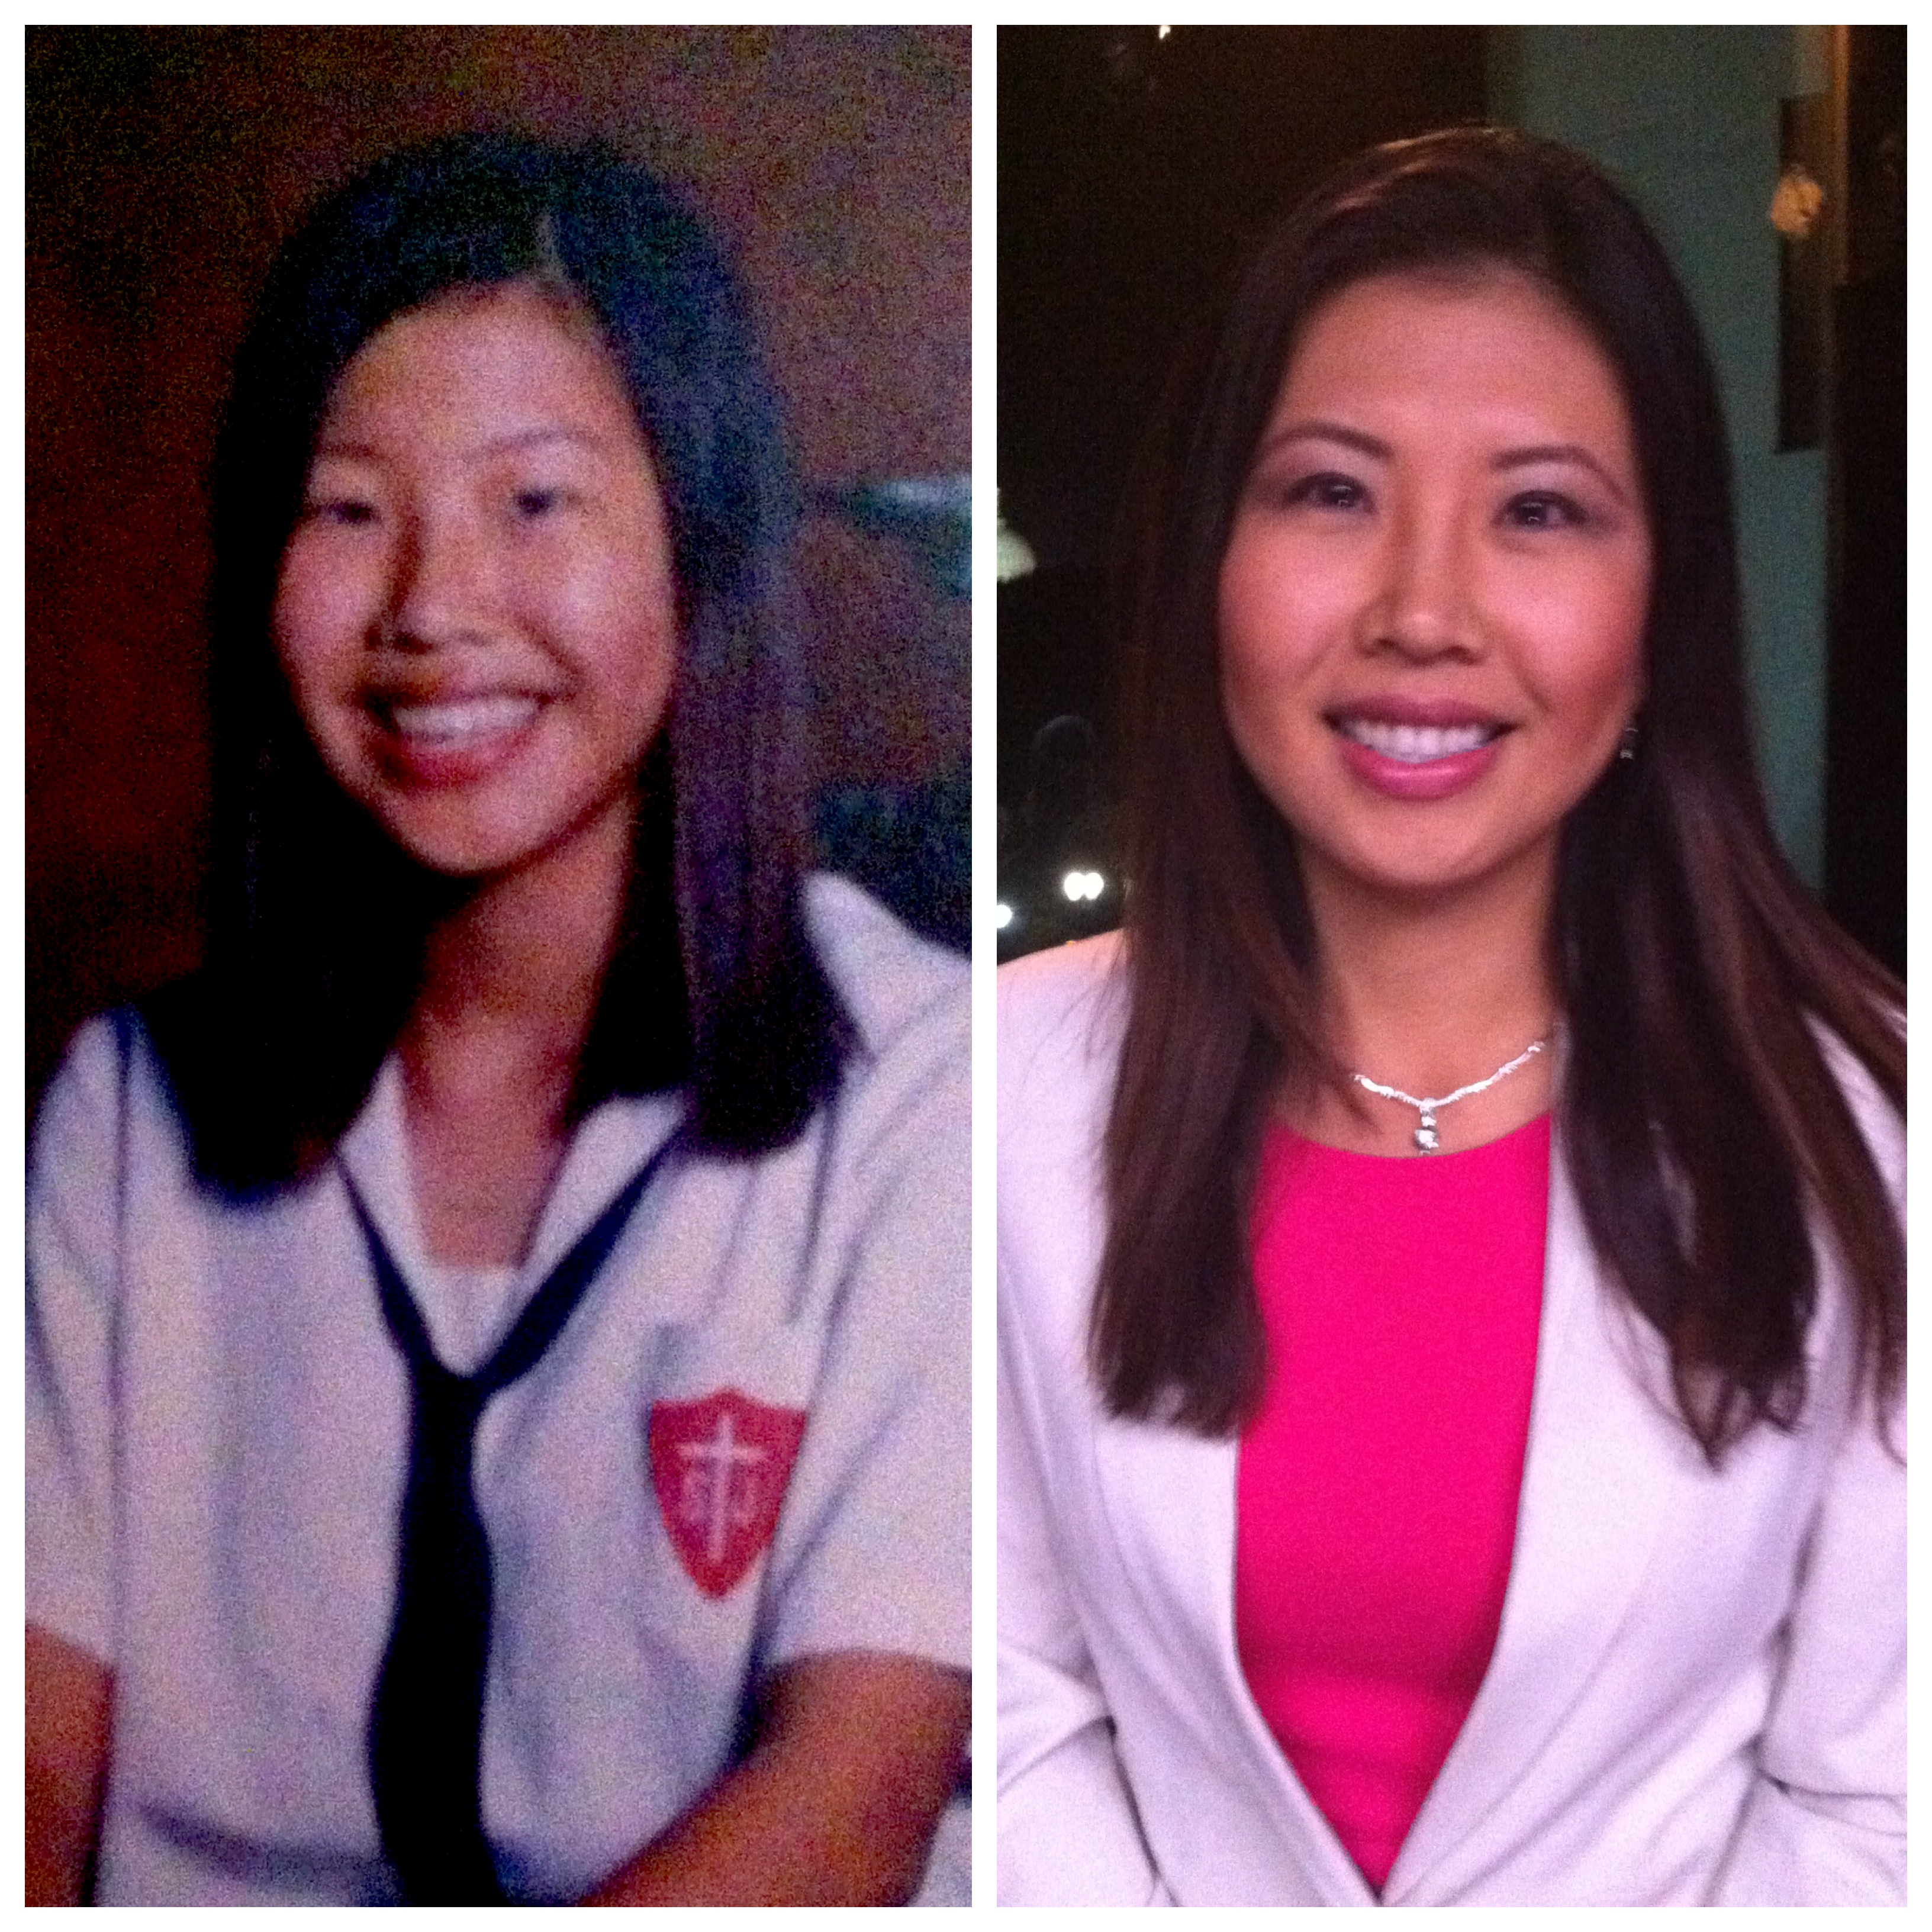 (Left: Pre-surgery, middle school. Right: Smiling now)